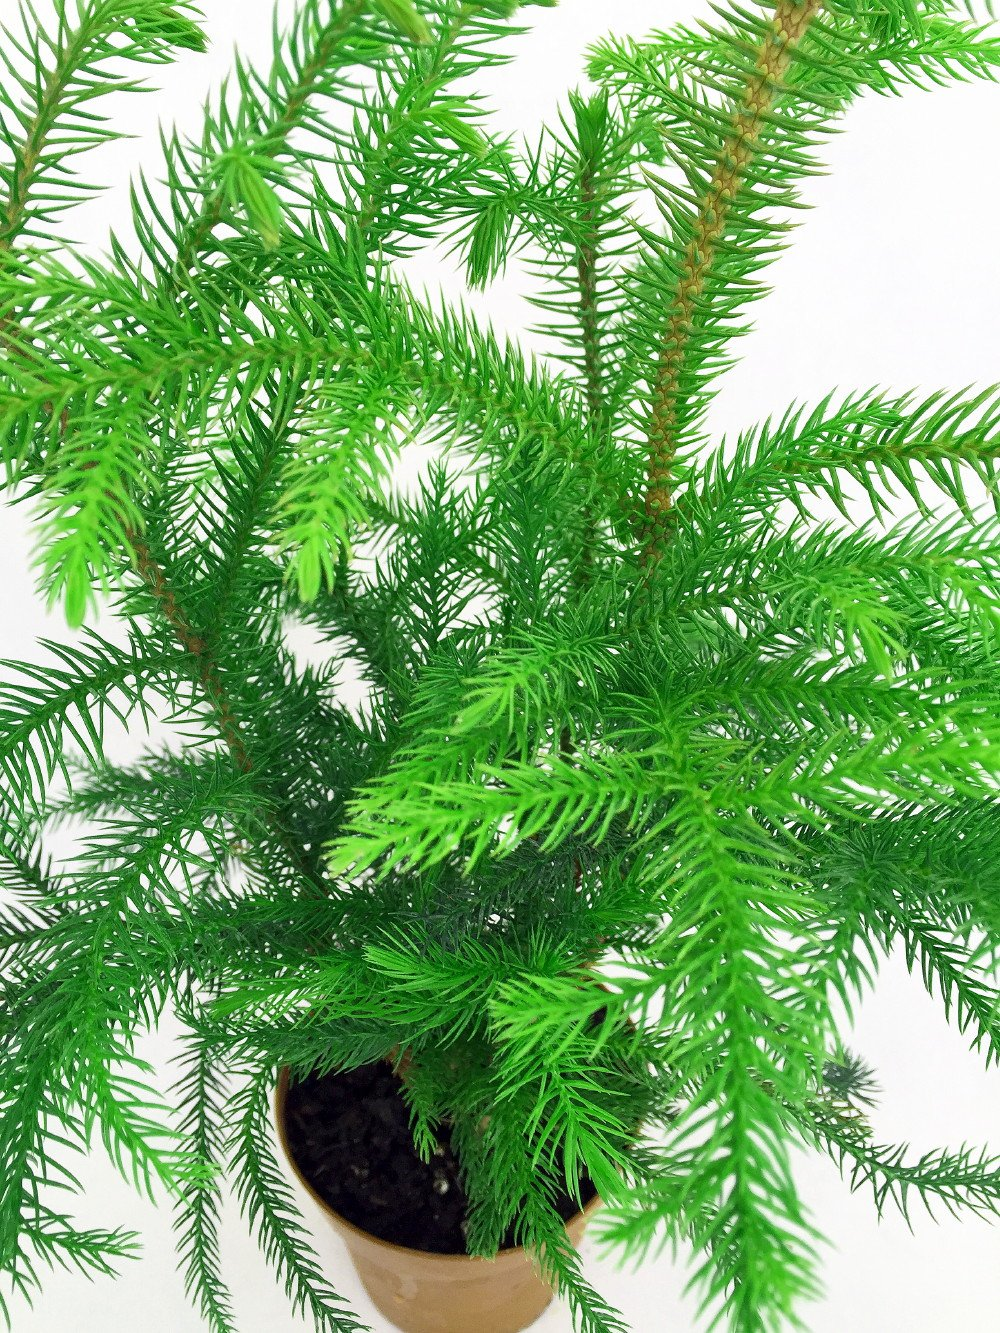 And information network araucaria heterophylla norfolk pine - Amazon Com Norfolk Island Pine The Indoor Christmas Tree 4 Pot Patio Lawn Garden